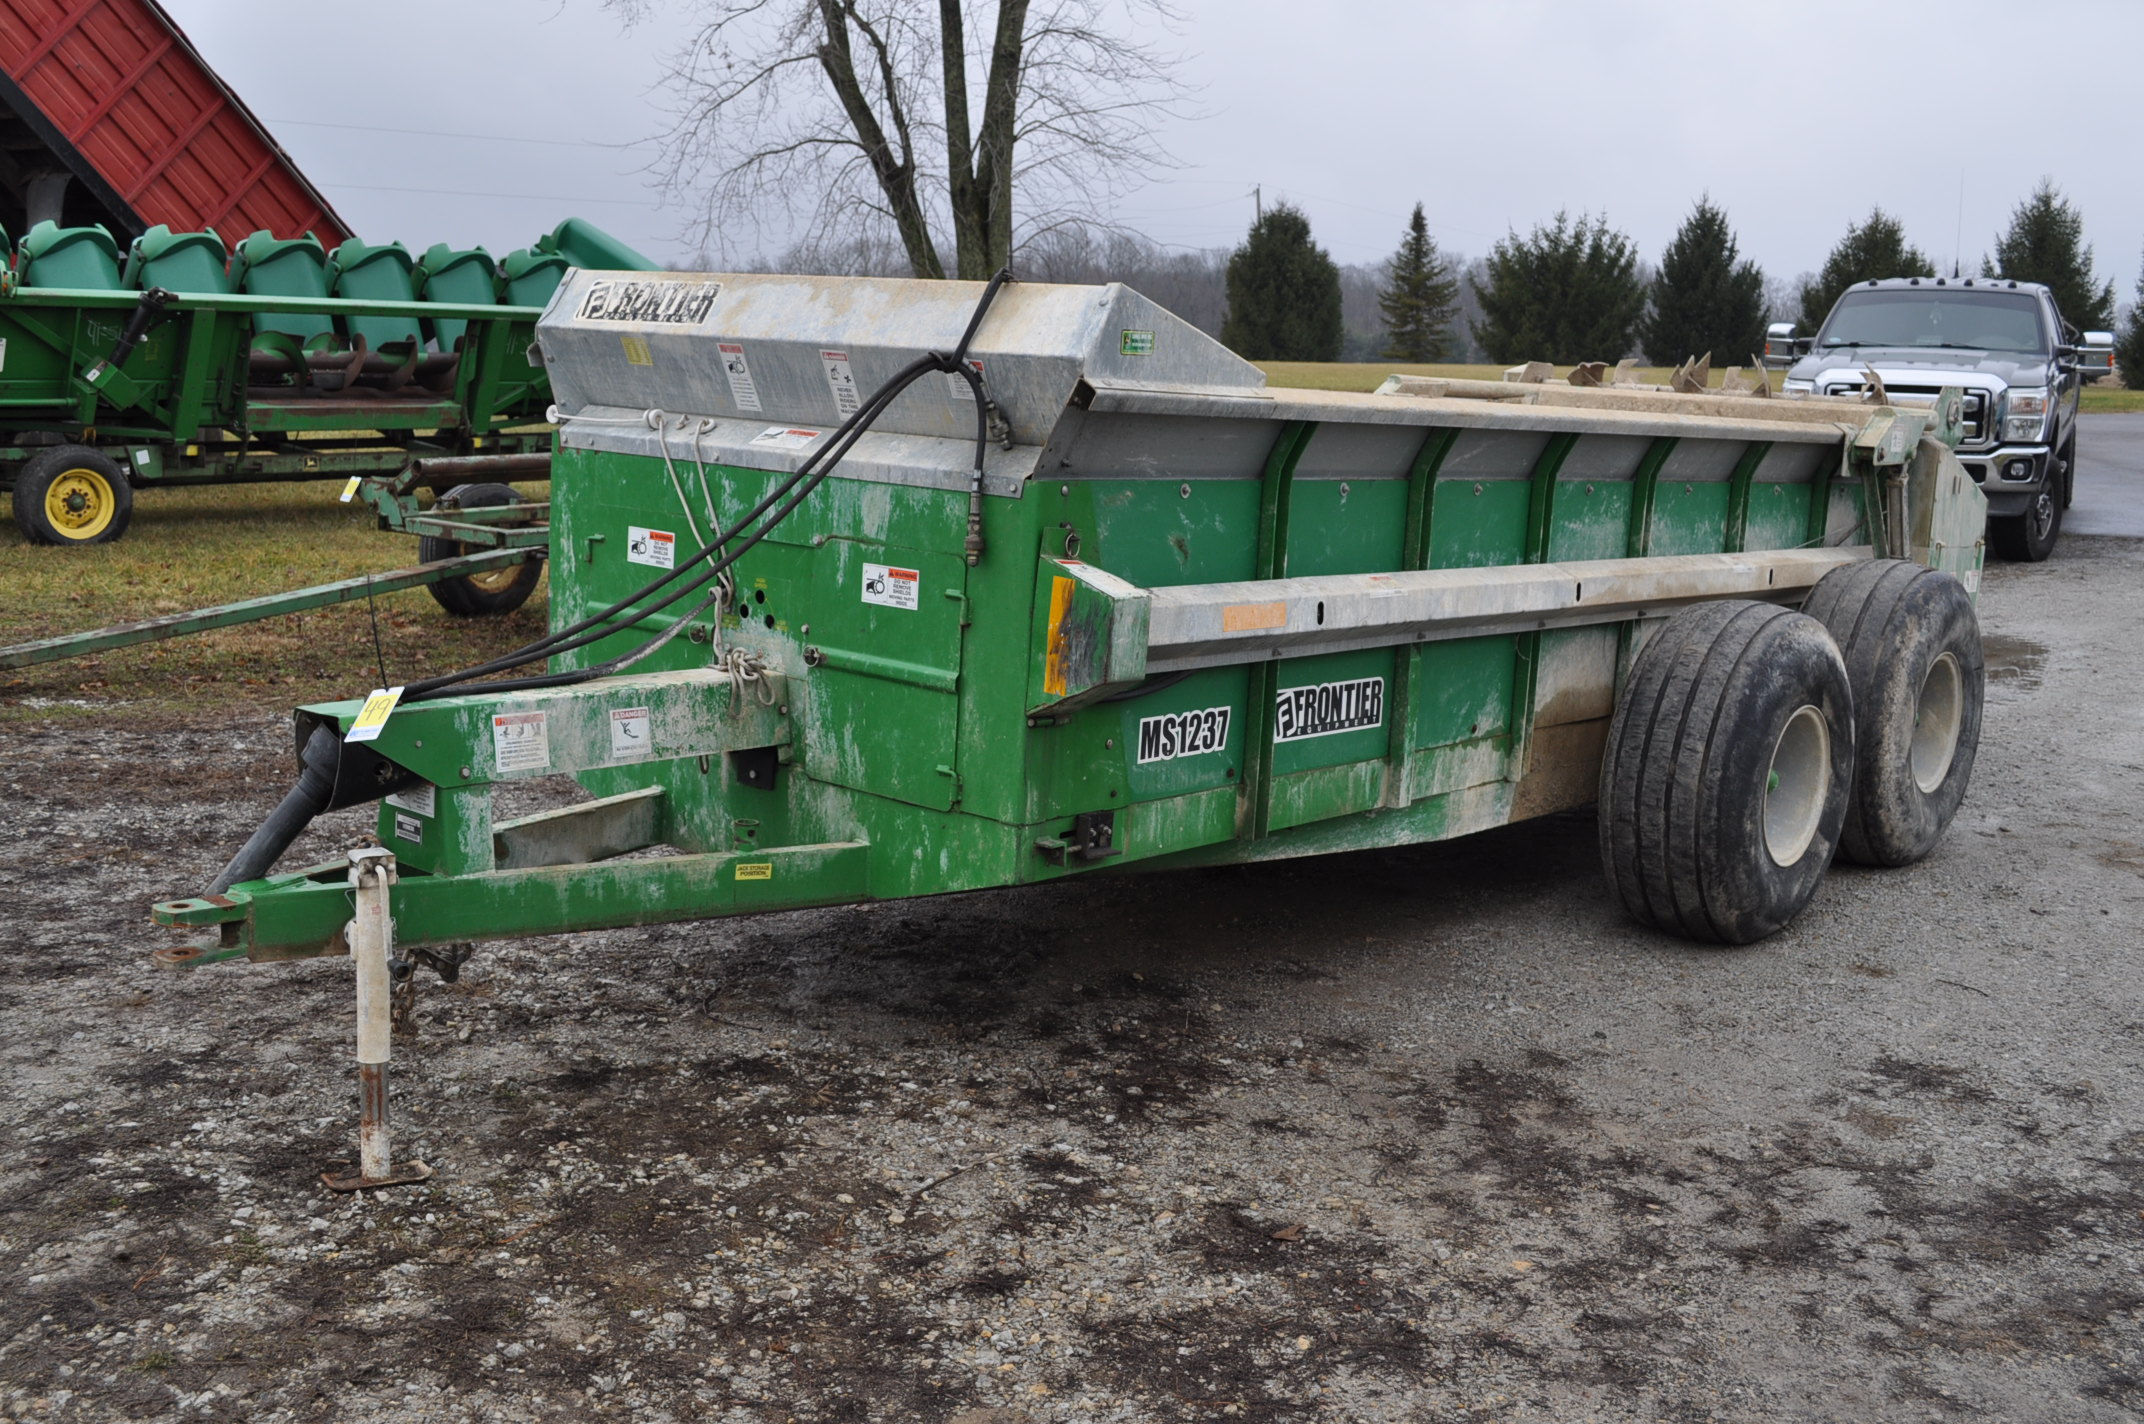 16' Frontier MS 1237 manure spreader, 540 pto, 16.5-16.1 tandem, slop gate, upper beater, has only